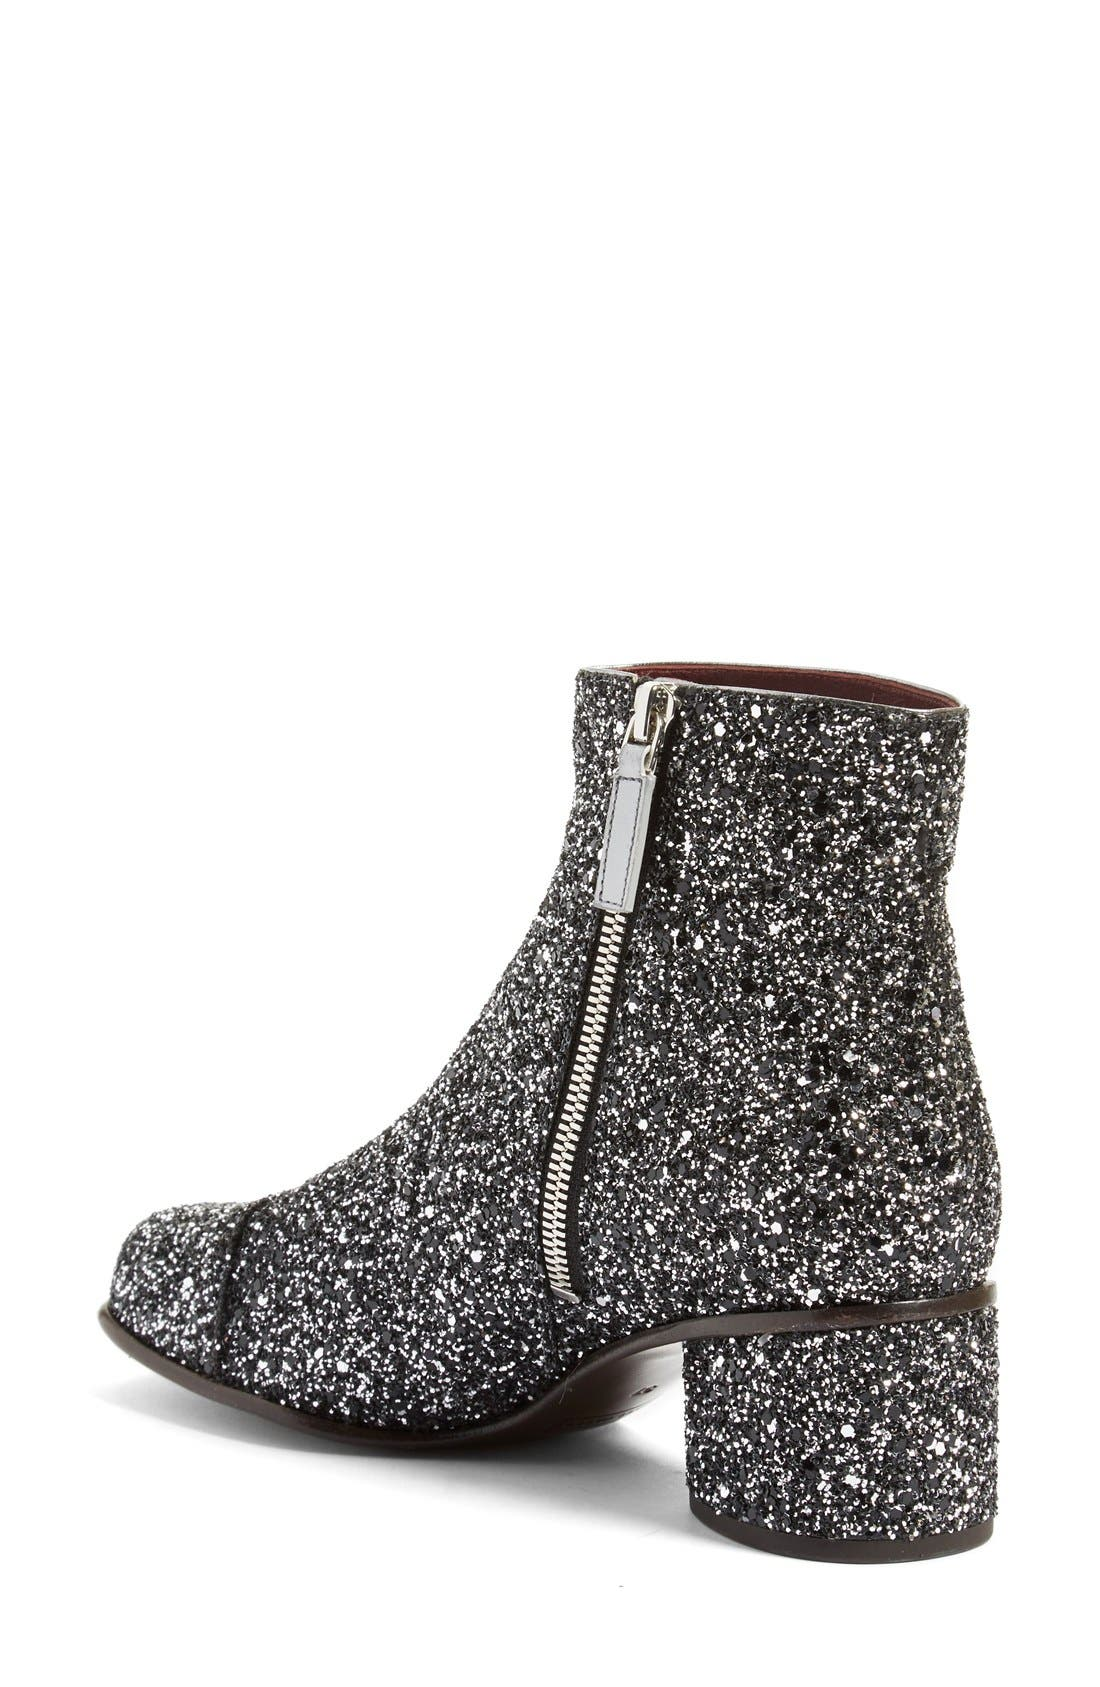 'Camilla' Ankle Boot,                             Alternate thumbnail 2, color,                             040